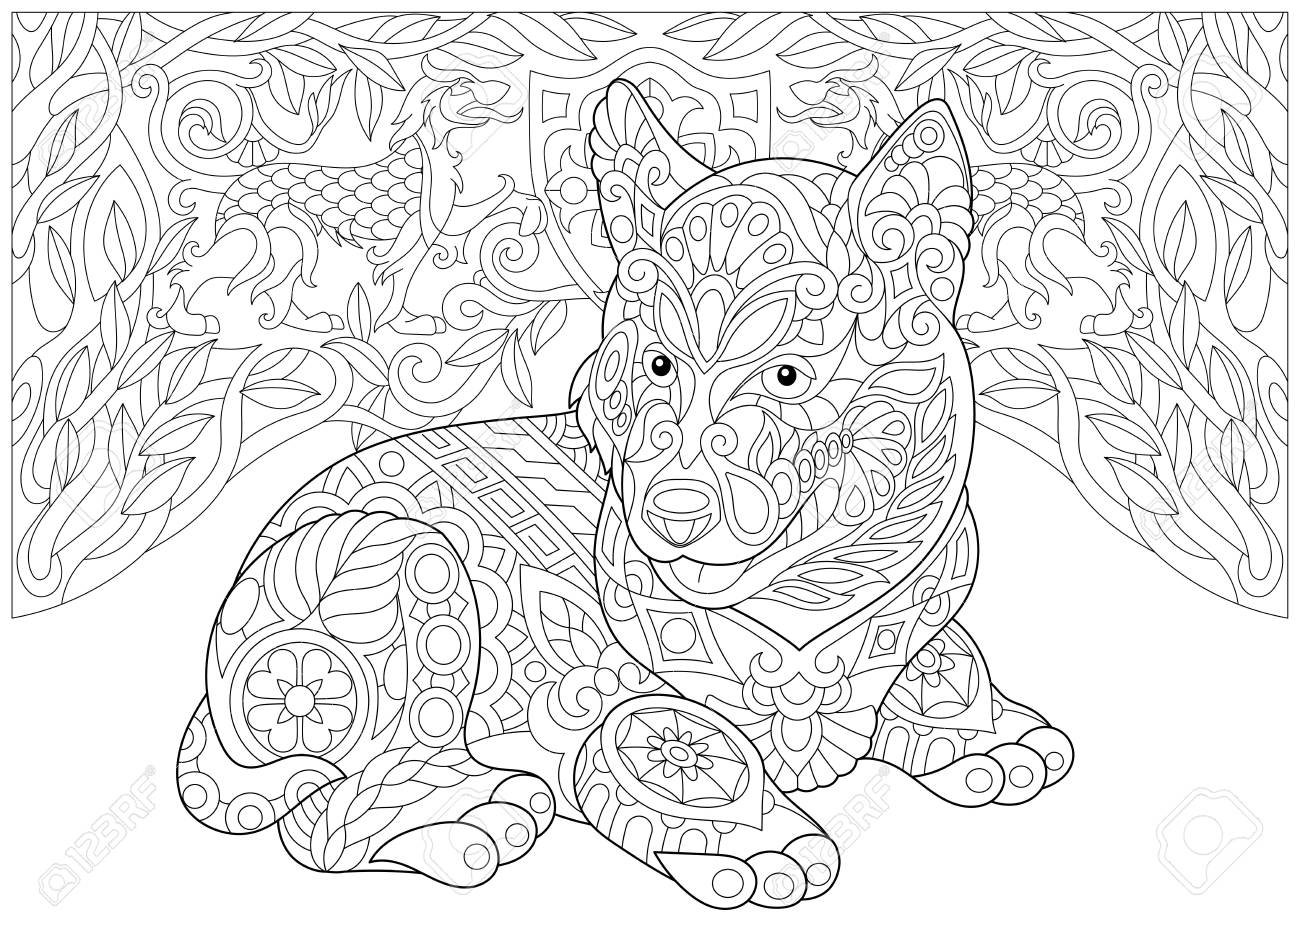 Siberian Husky Dog | Super Coloring | Dog coloring page, Puppy ... | 928x1300